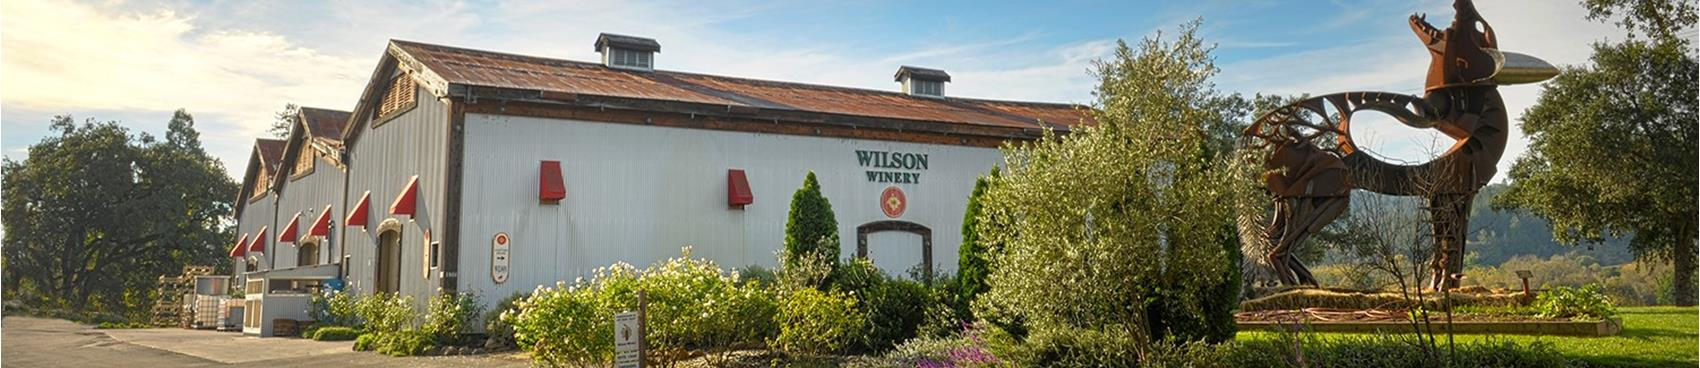 A image of Wilson Winery